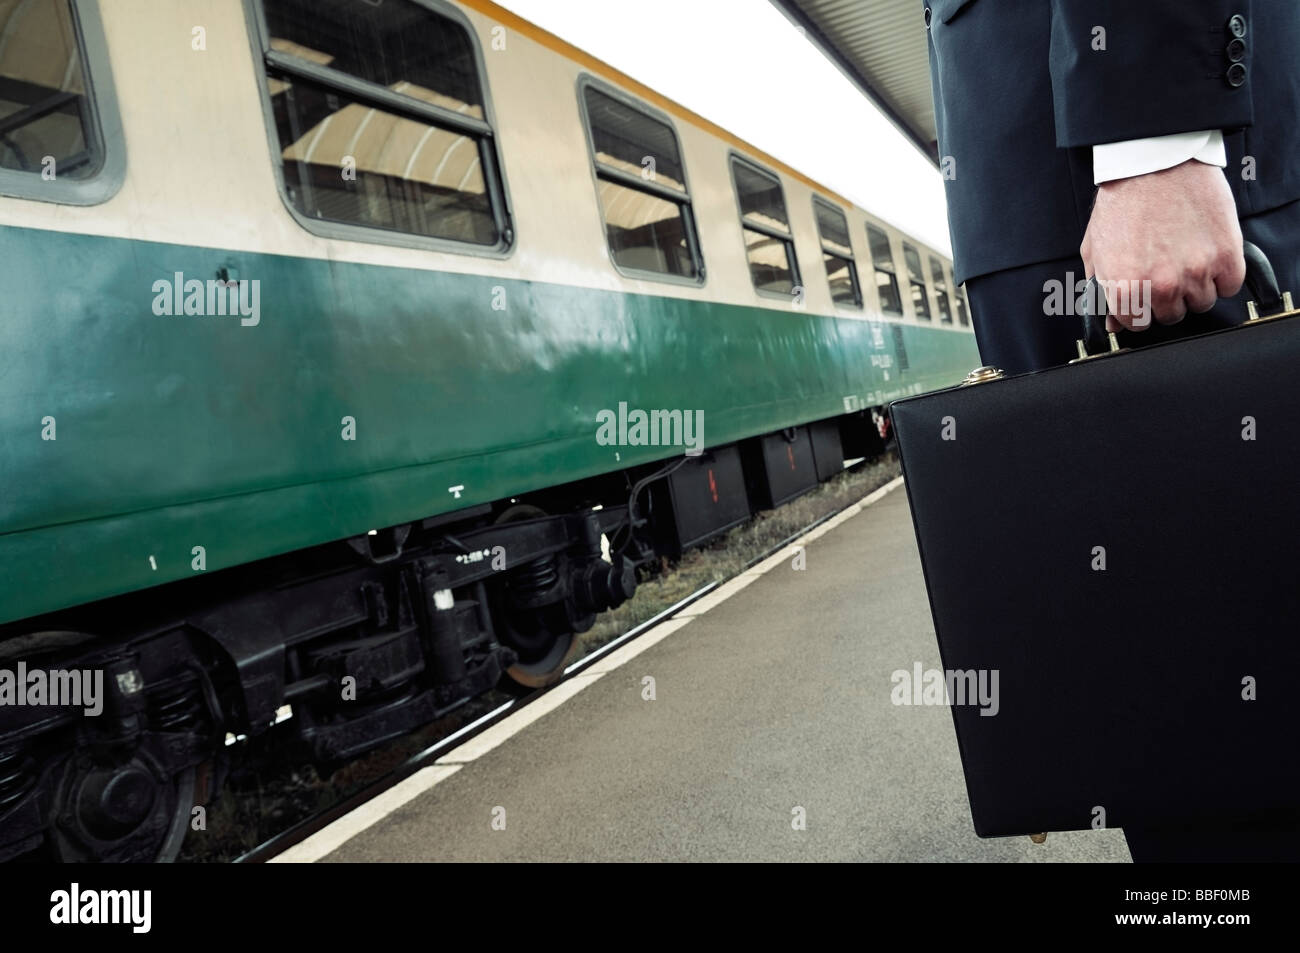 Businessman Holding a Briefcase Standing on a Train Station Platform Low Section - Stock Image